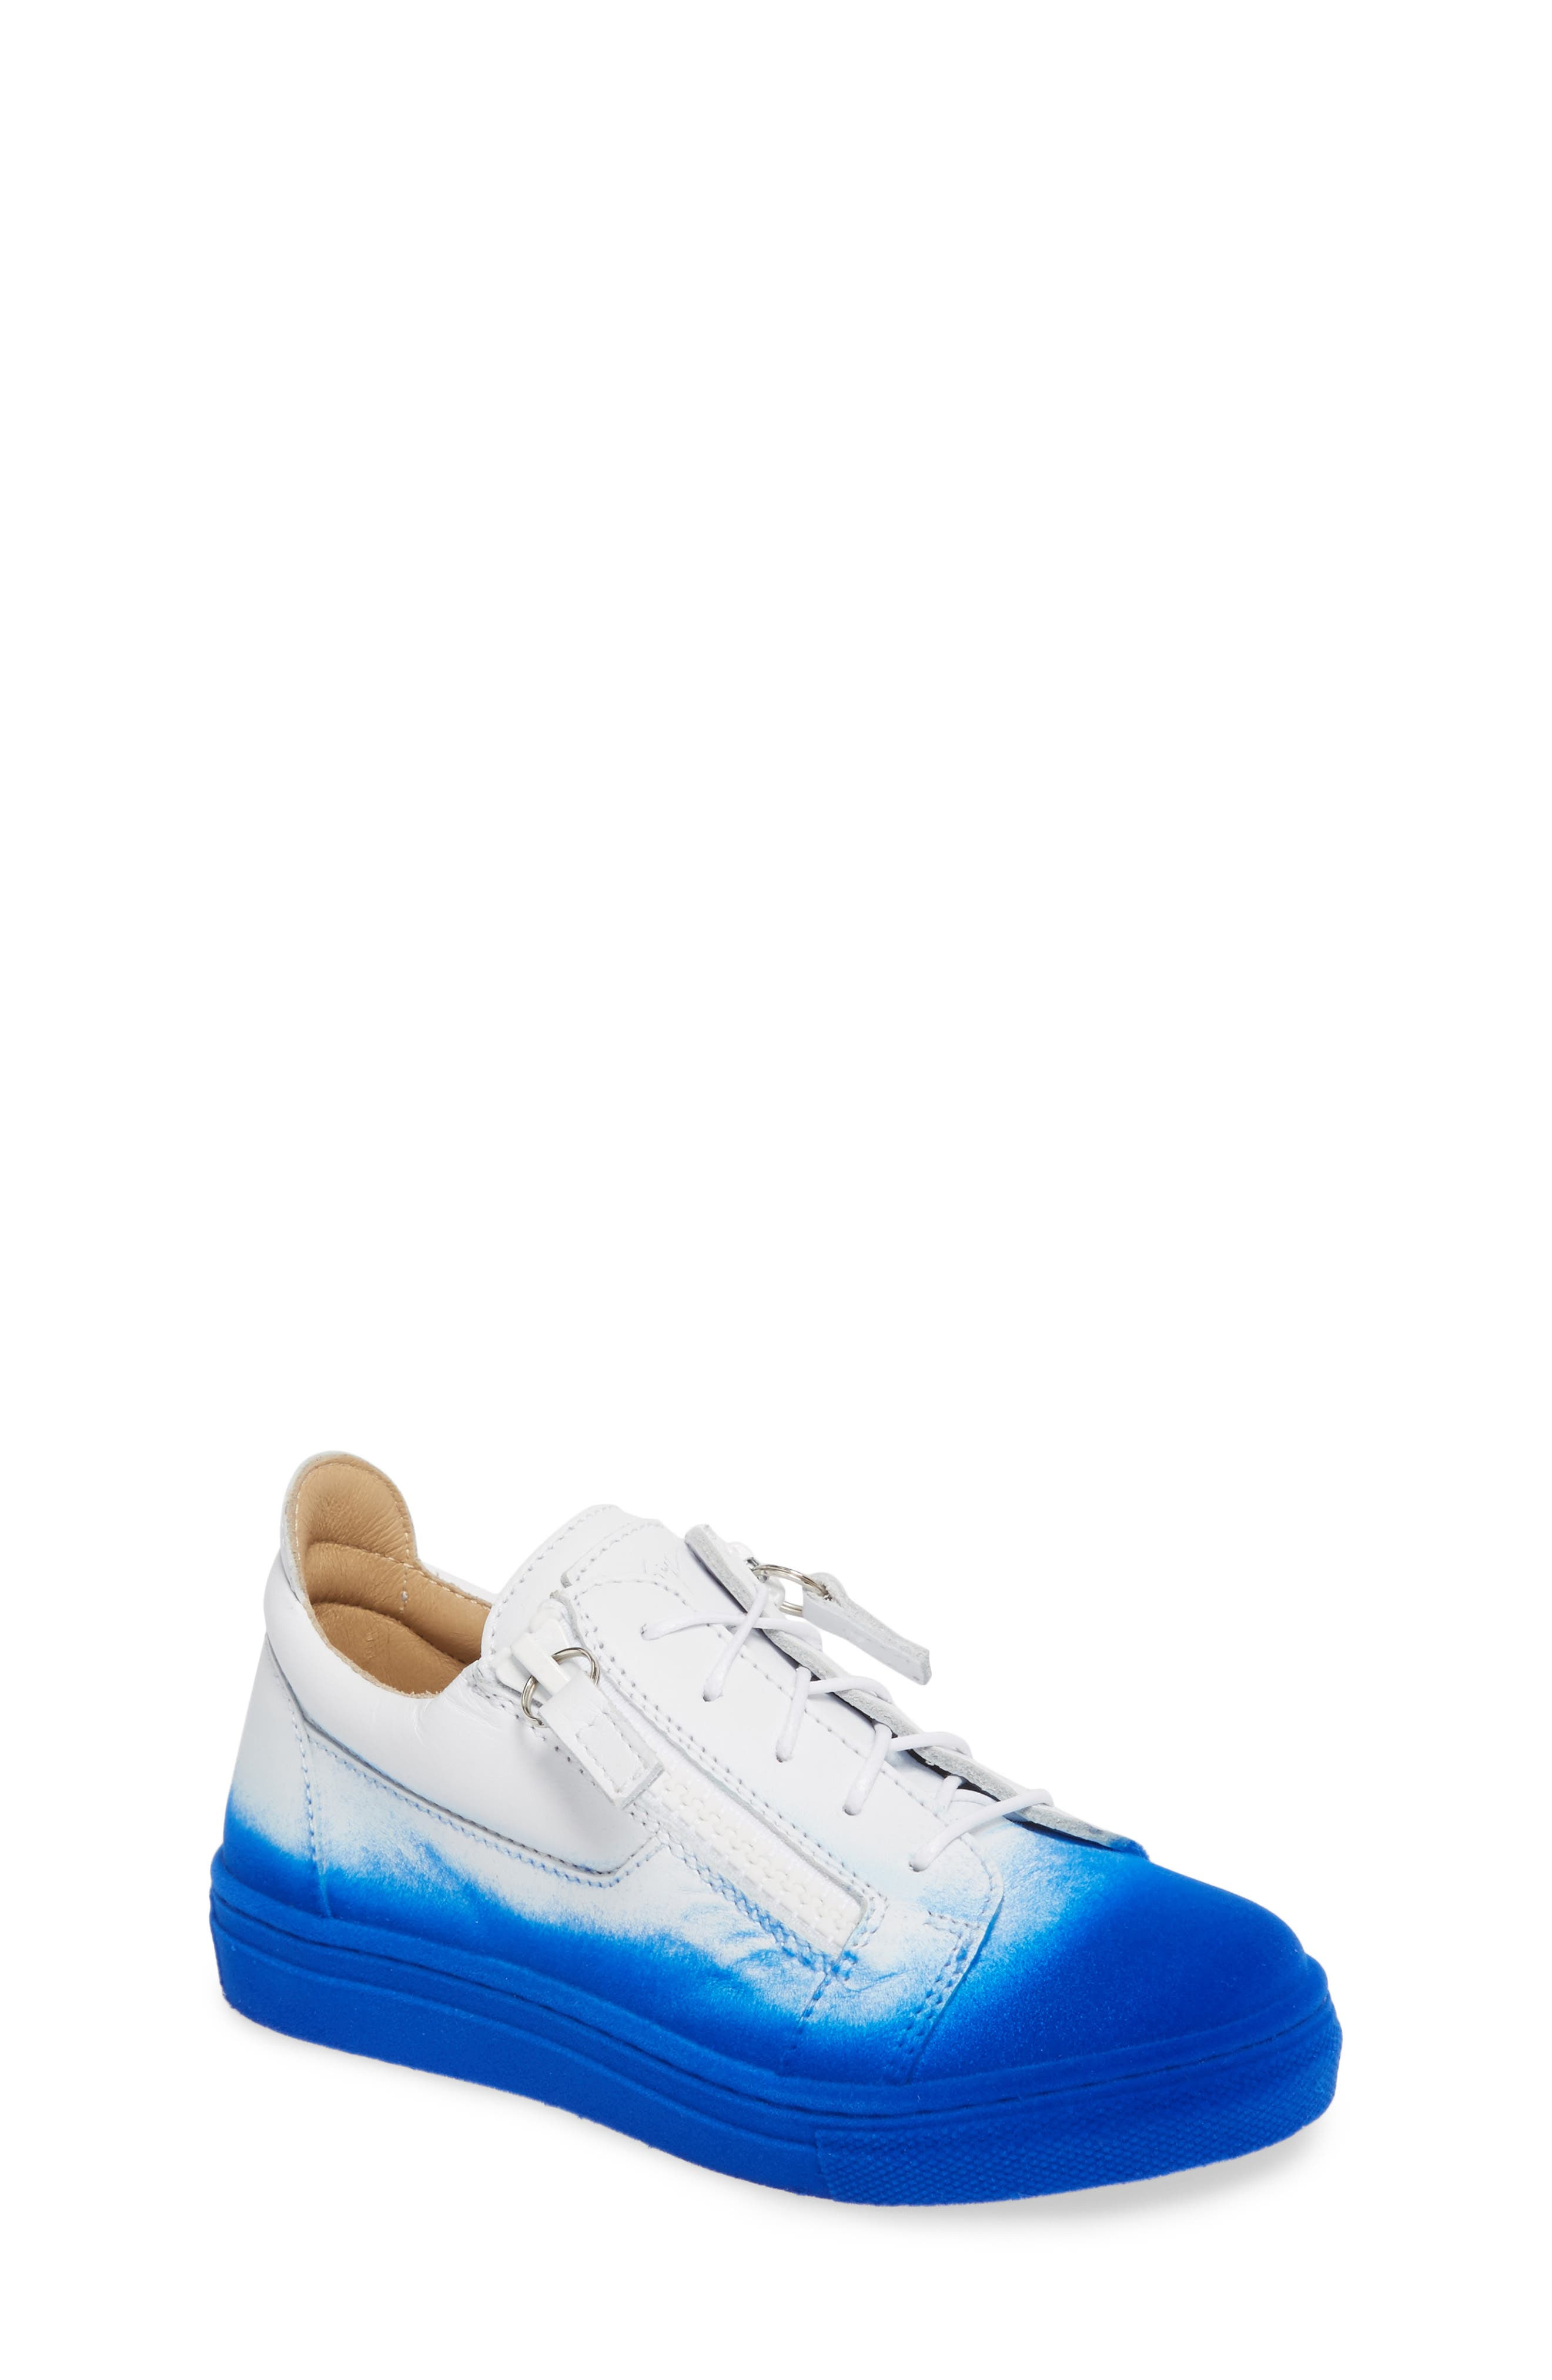 Smuggy Ombré Flocked Sneaker,                             Main thumbnail 1, color,                             400